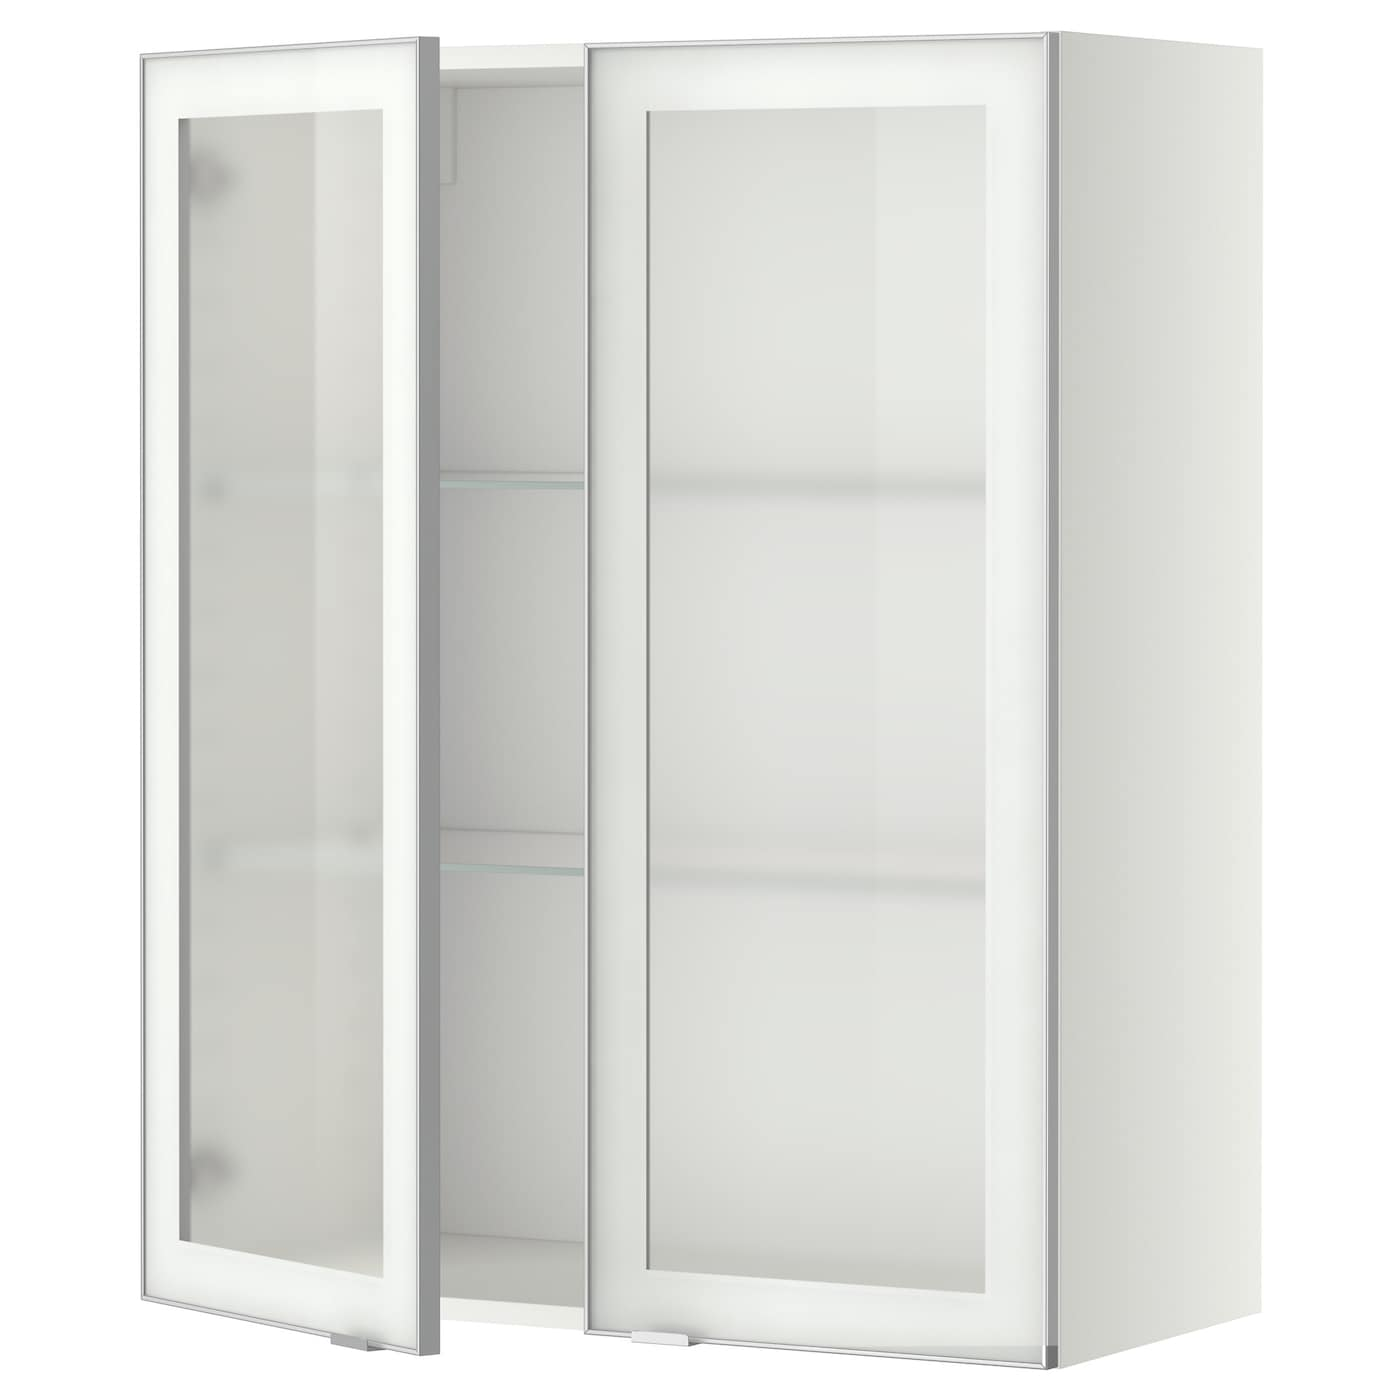 metod wall cabinet w shelves 2 glass drs white jutis frosted glass 80x100 cm ikea. Black Bedroom Furniture Sets. Home Design Ideas